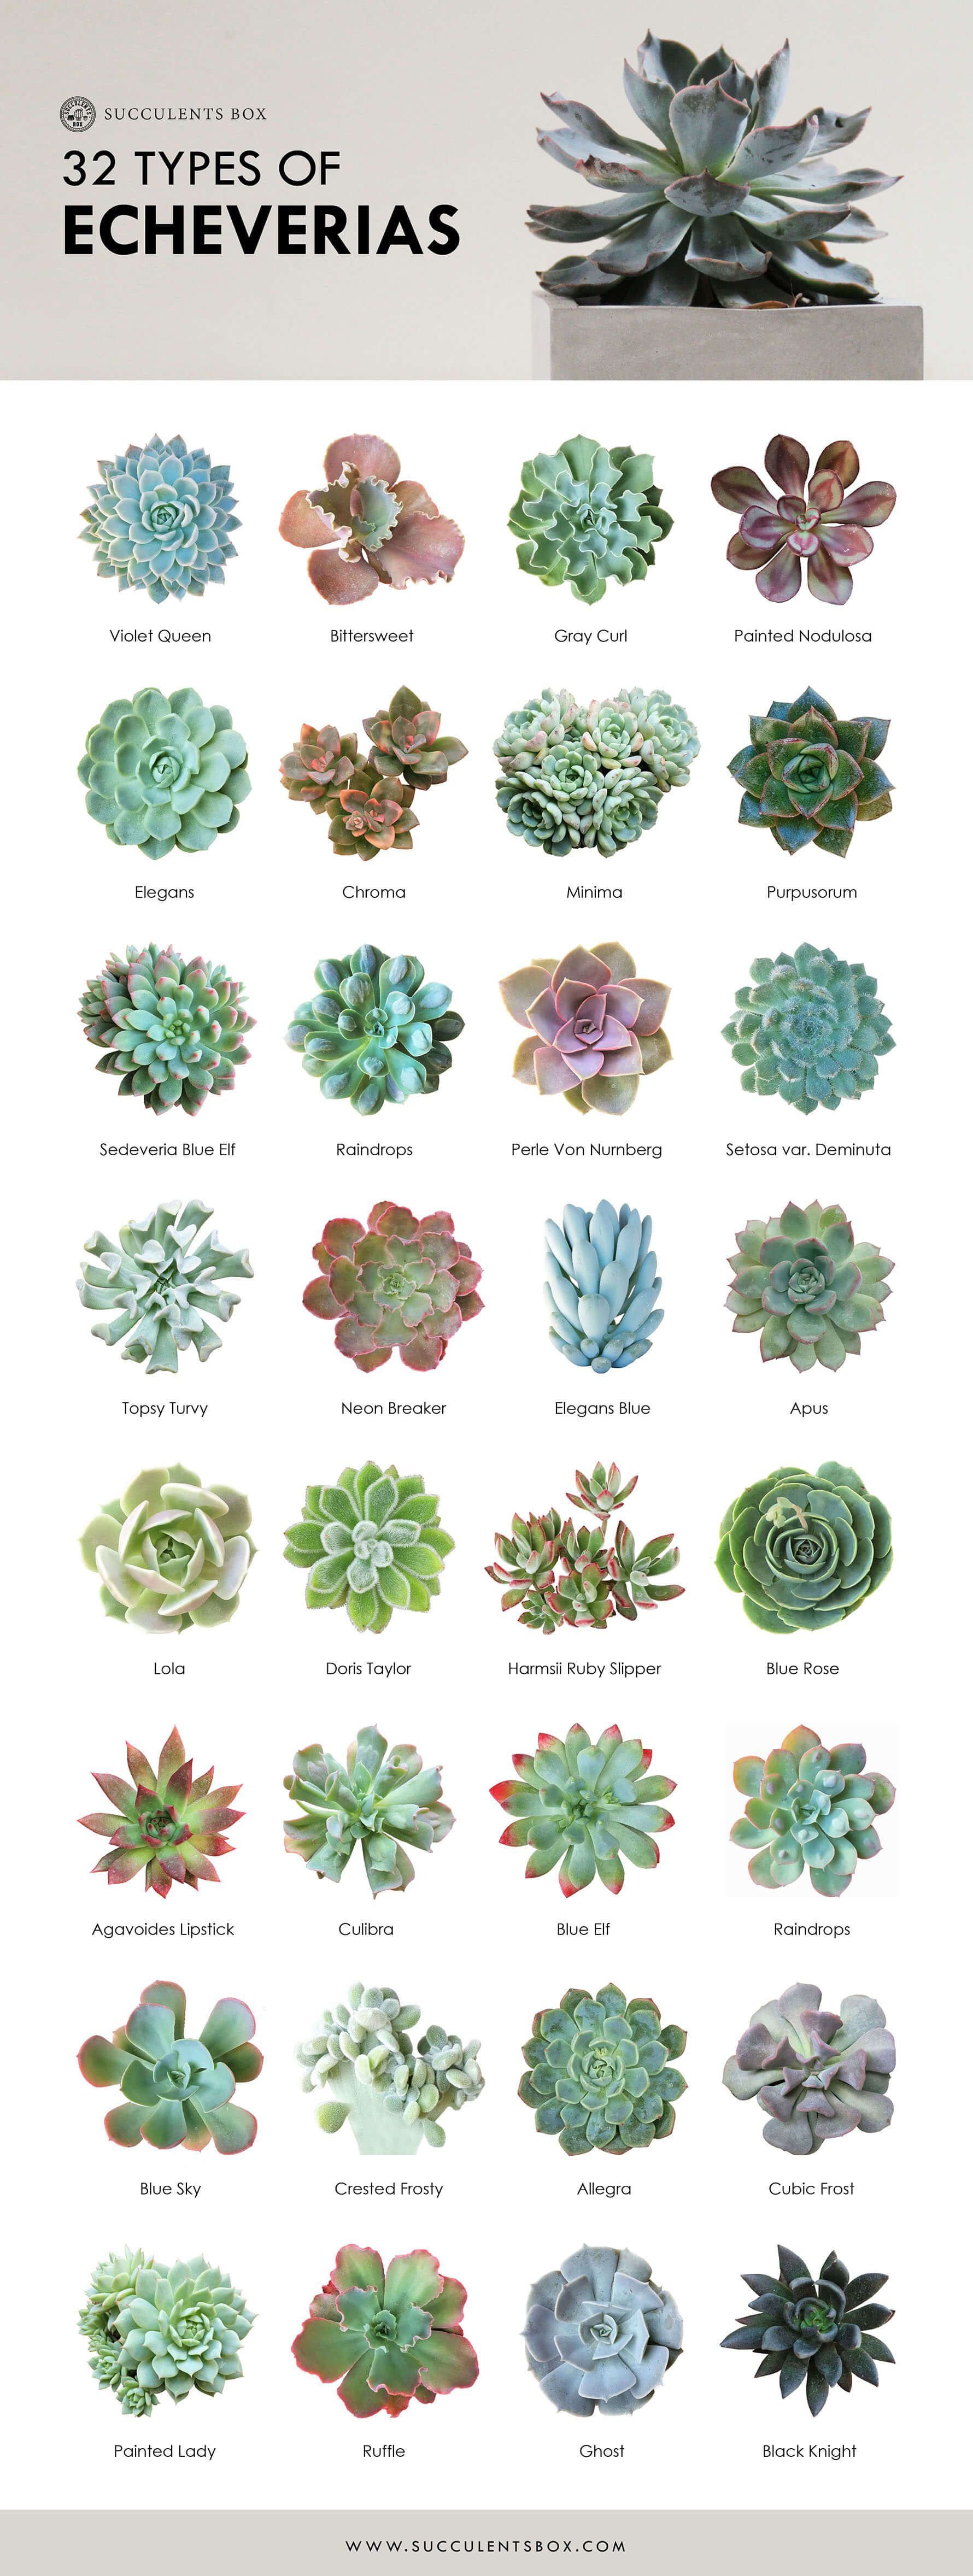 Echeveria Collection 32 types of Echeveria #succulents